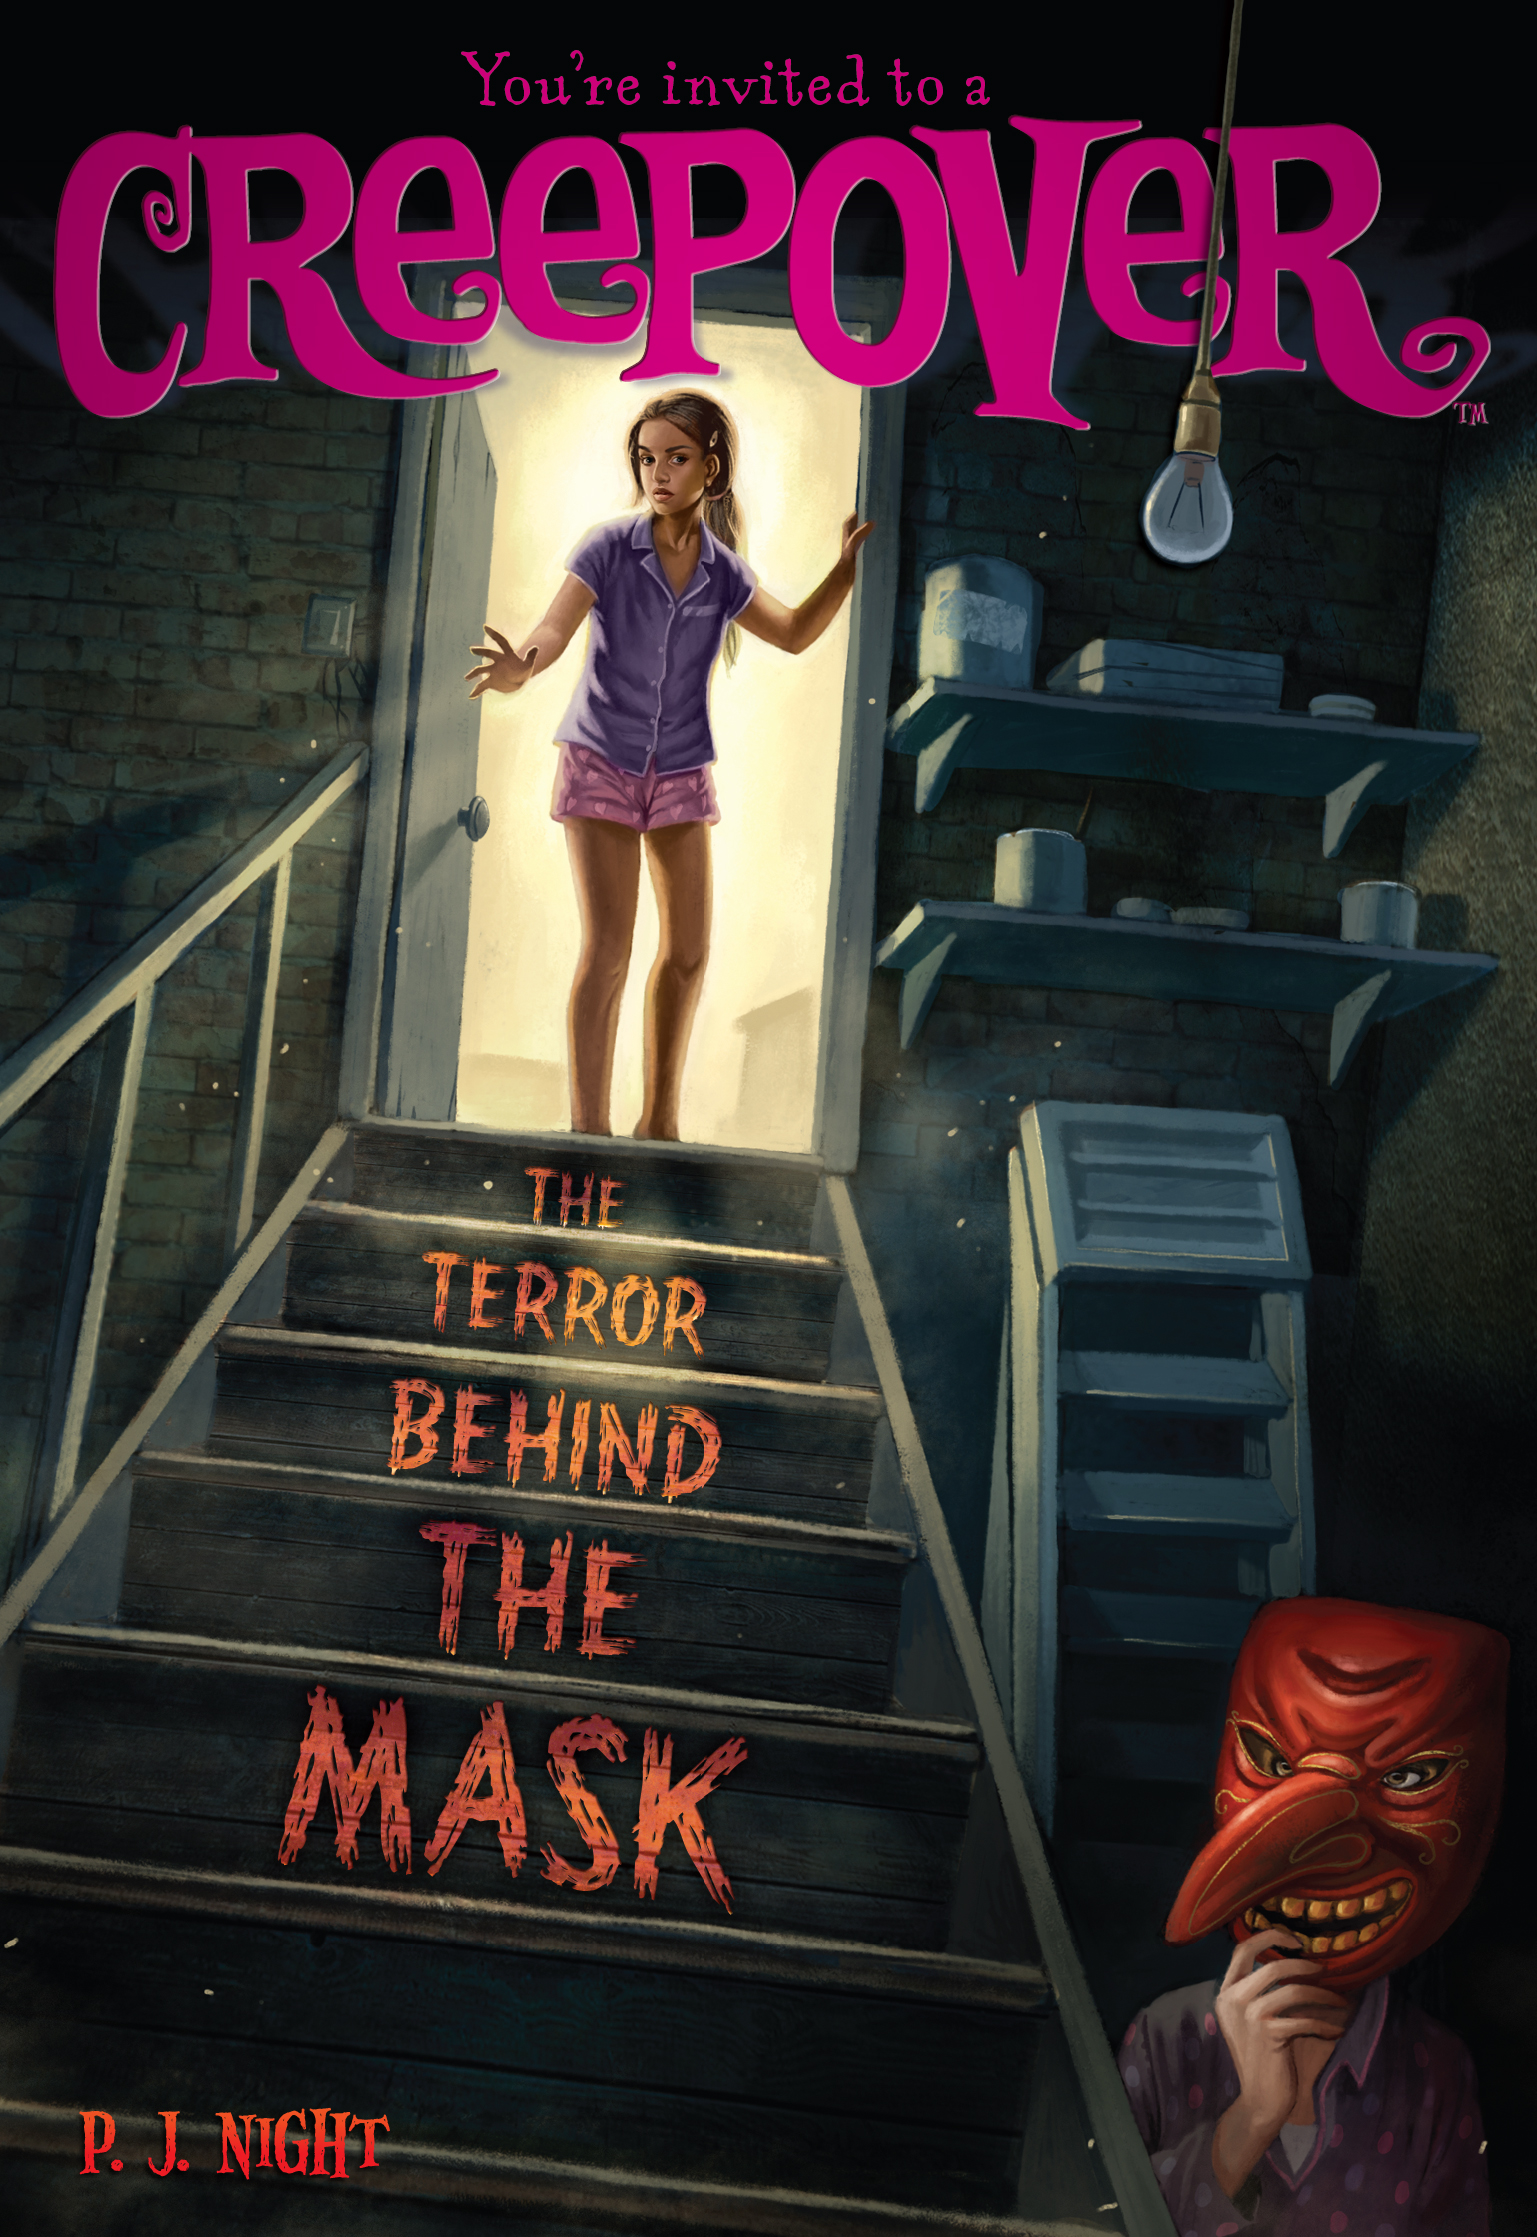 Terror-behind-the-mask-9781481404600_hr